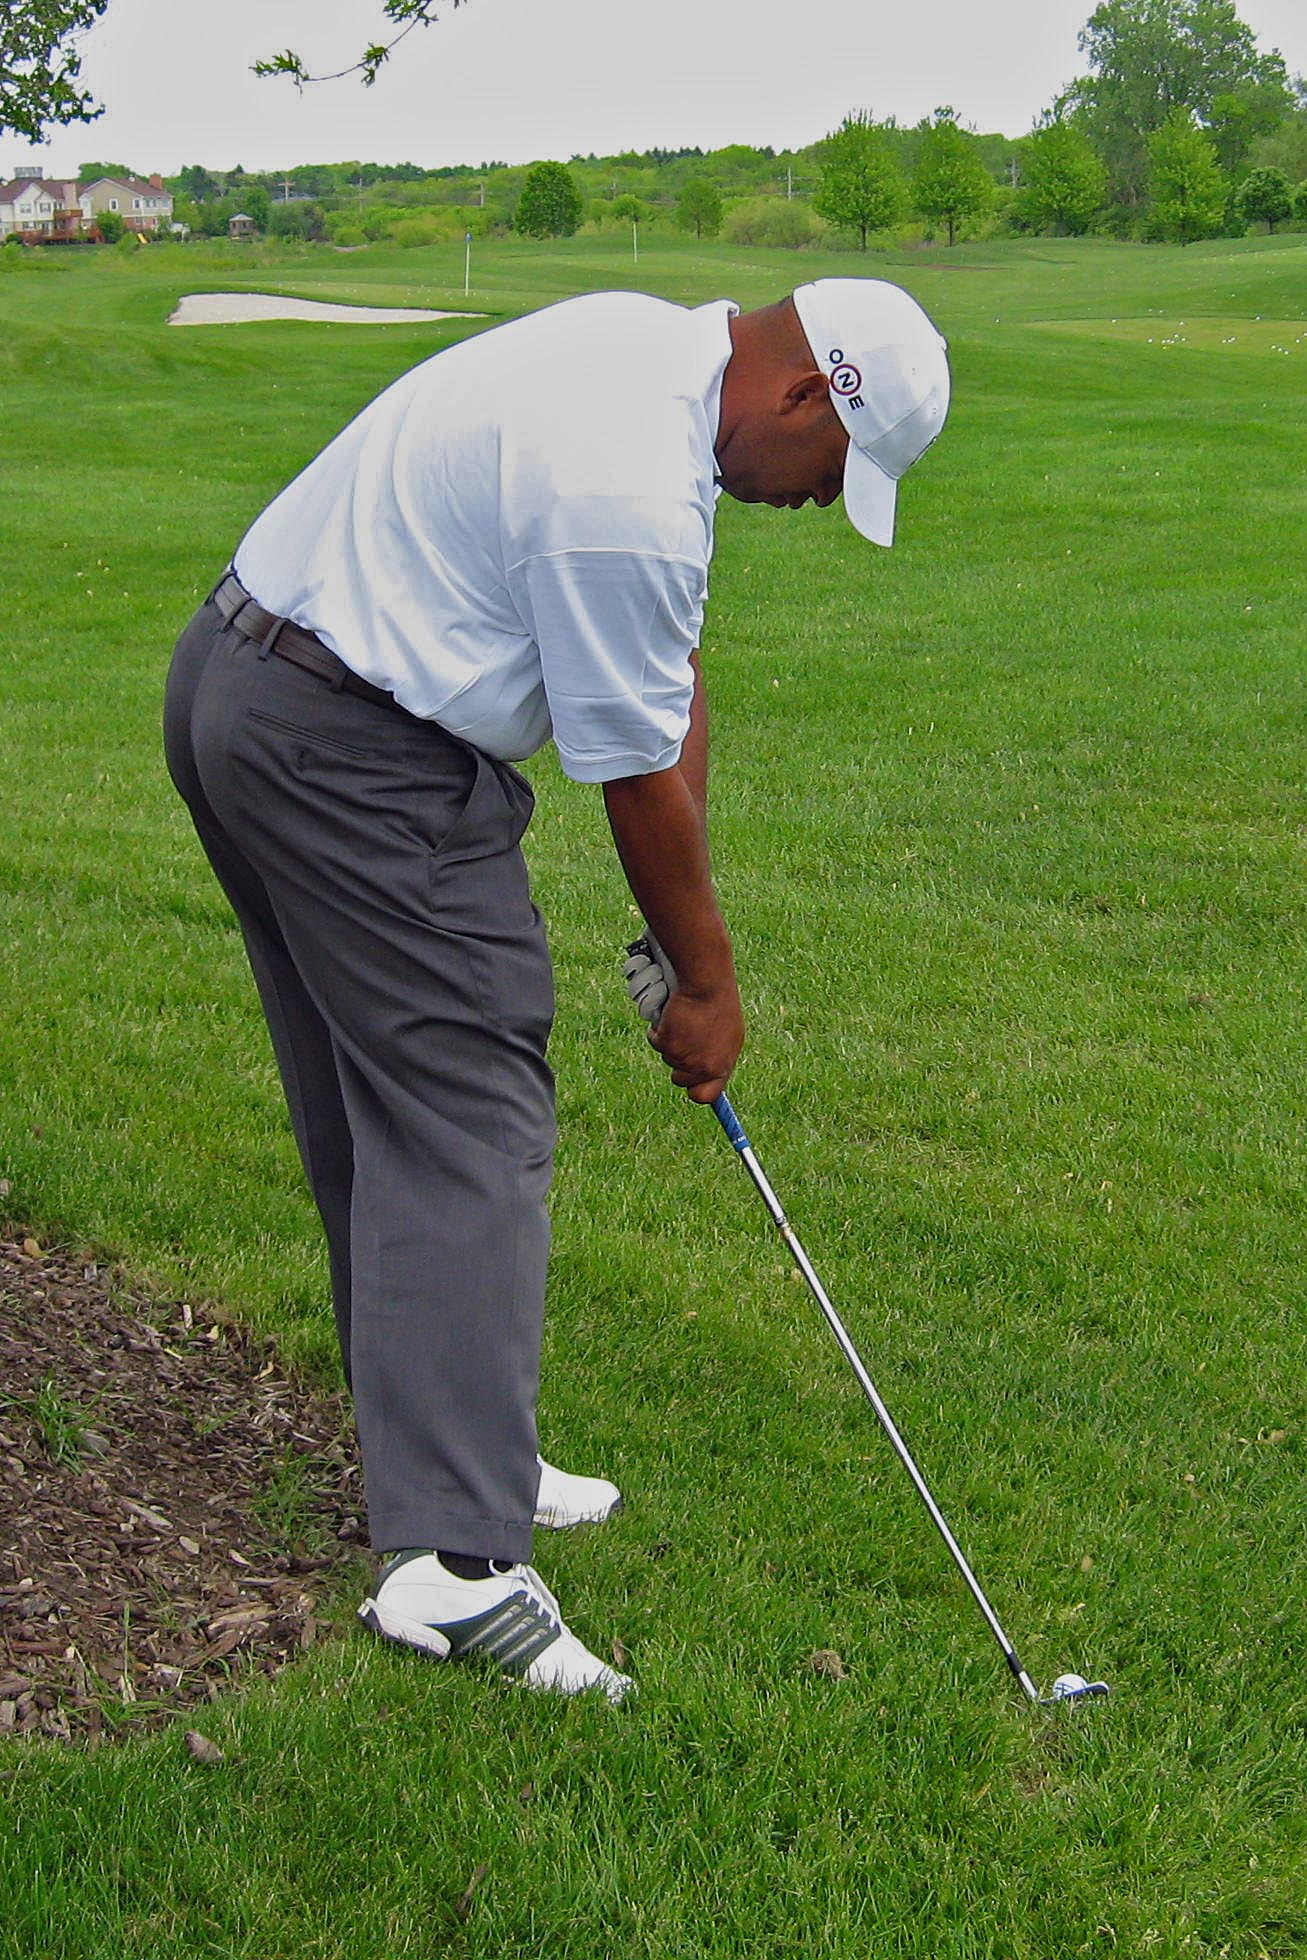 Grip up the club with a steeper swing path